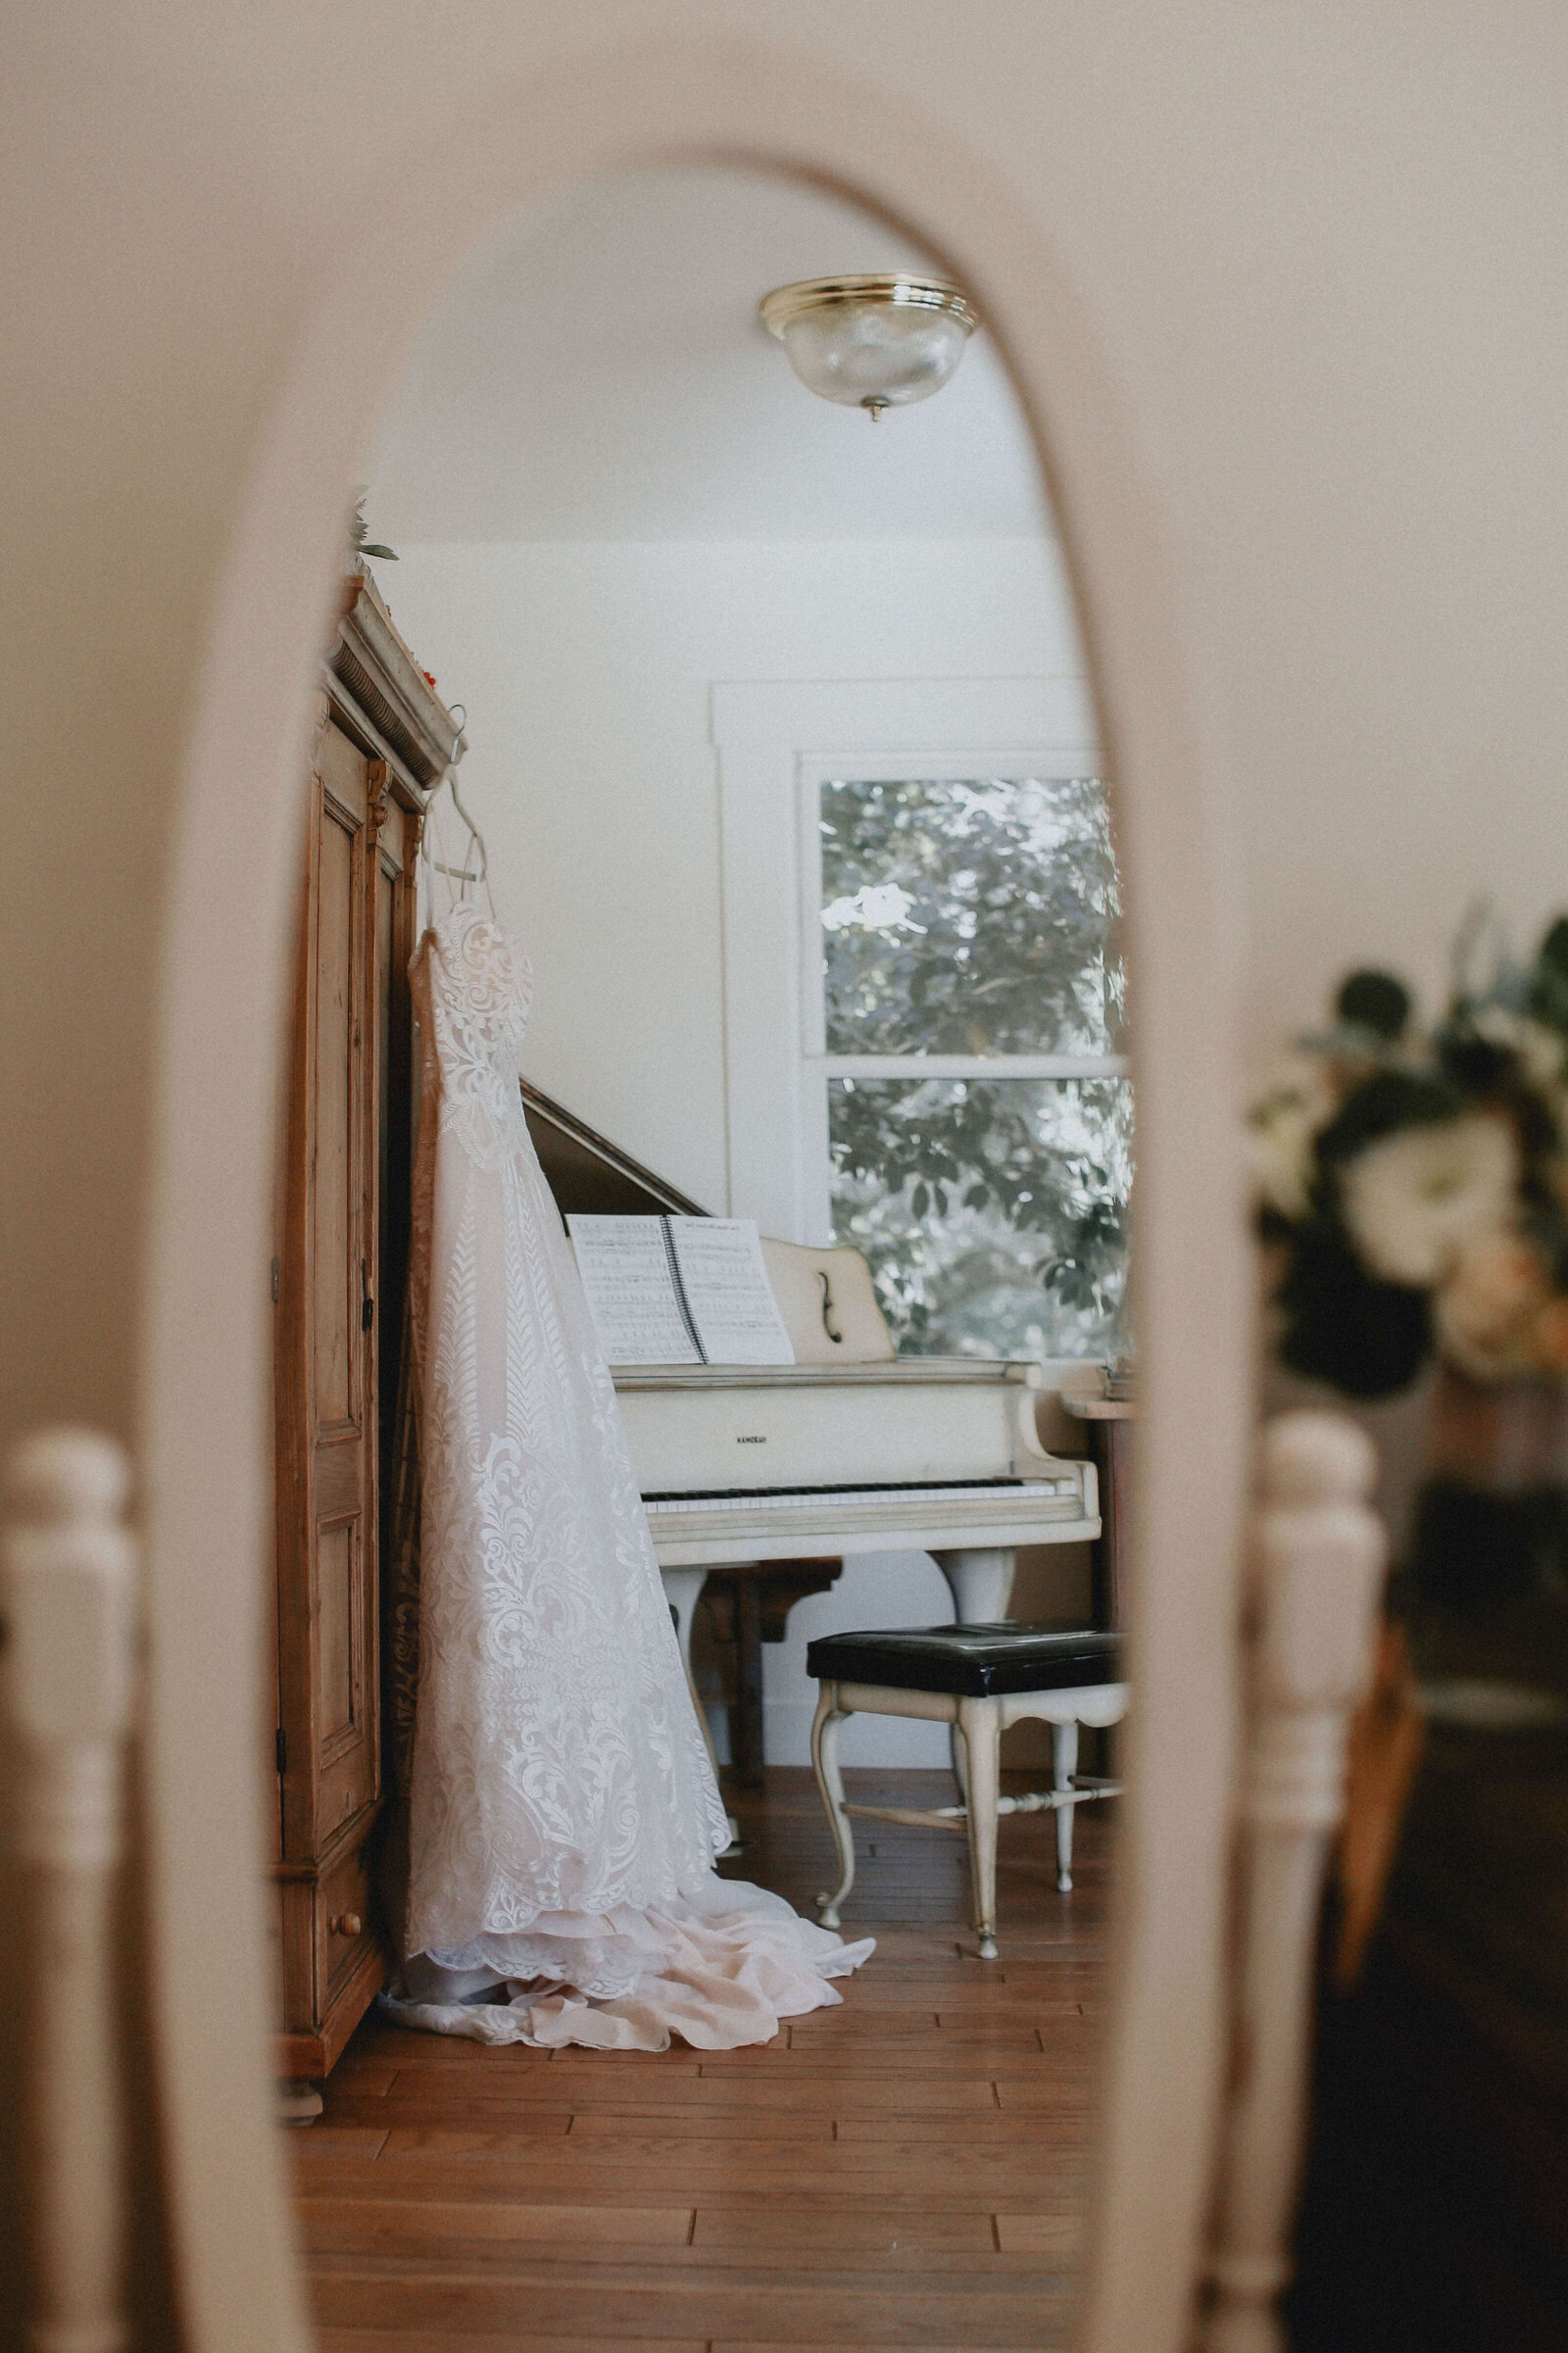 union-hotel-Occidental-california-wedding-sonoma-county-elopement-events-by-gianna-somona-wedding-planner-13